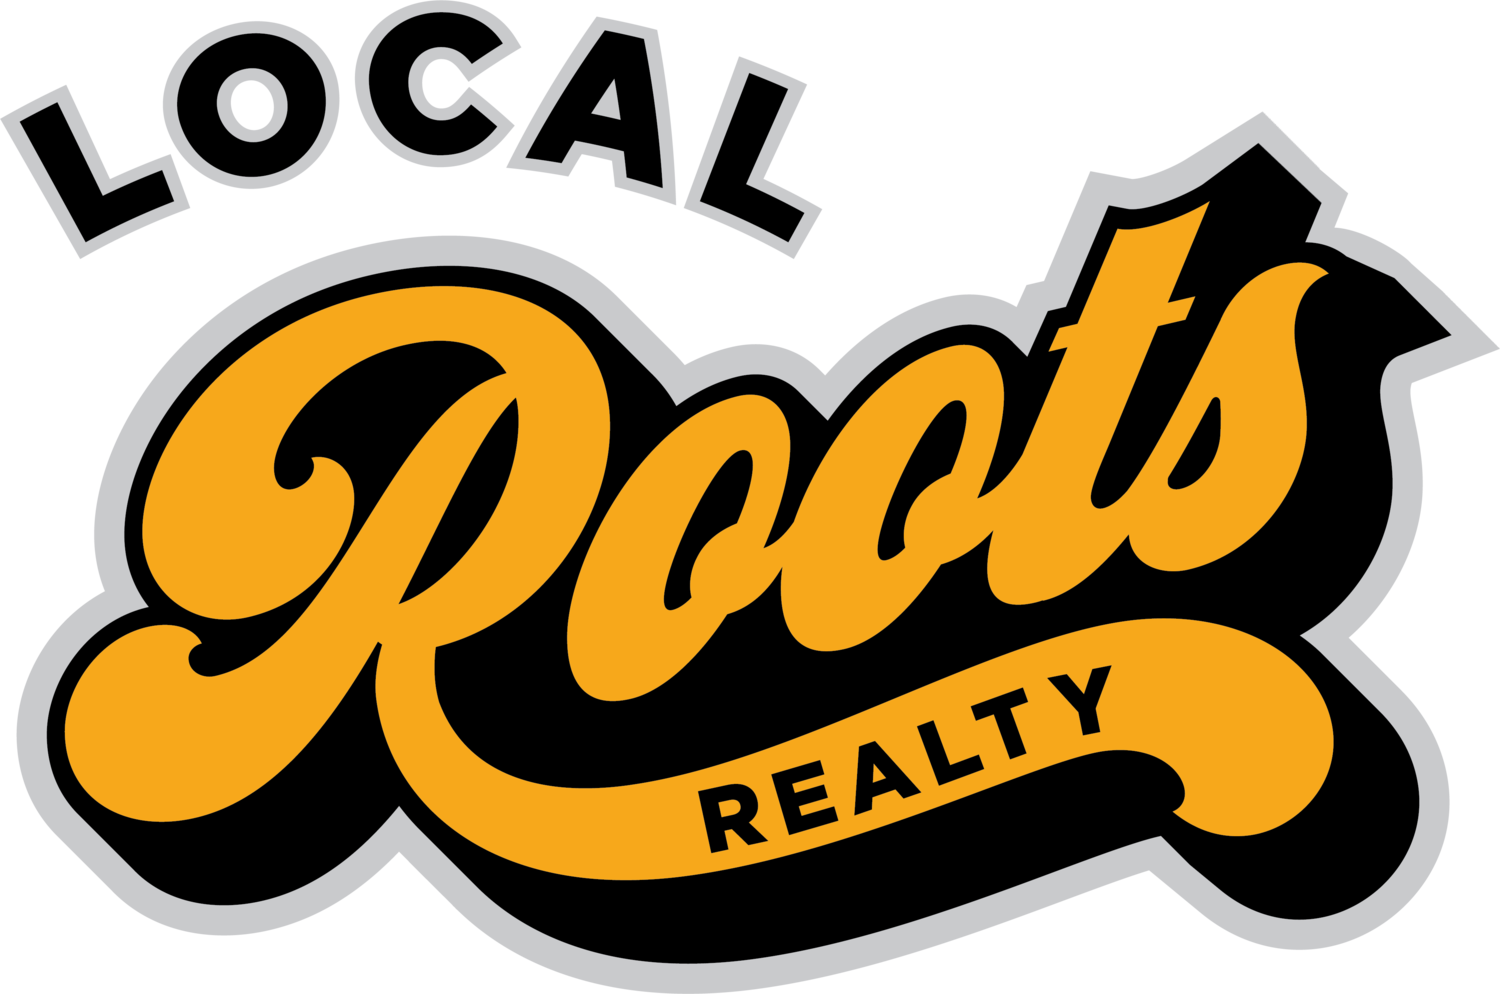 Local Roots Realty